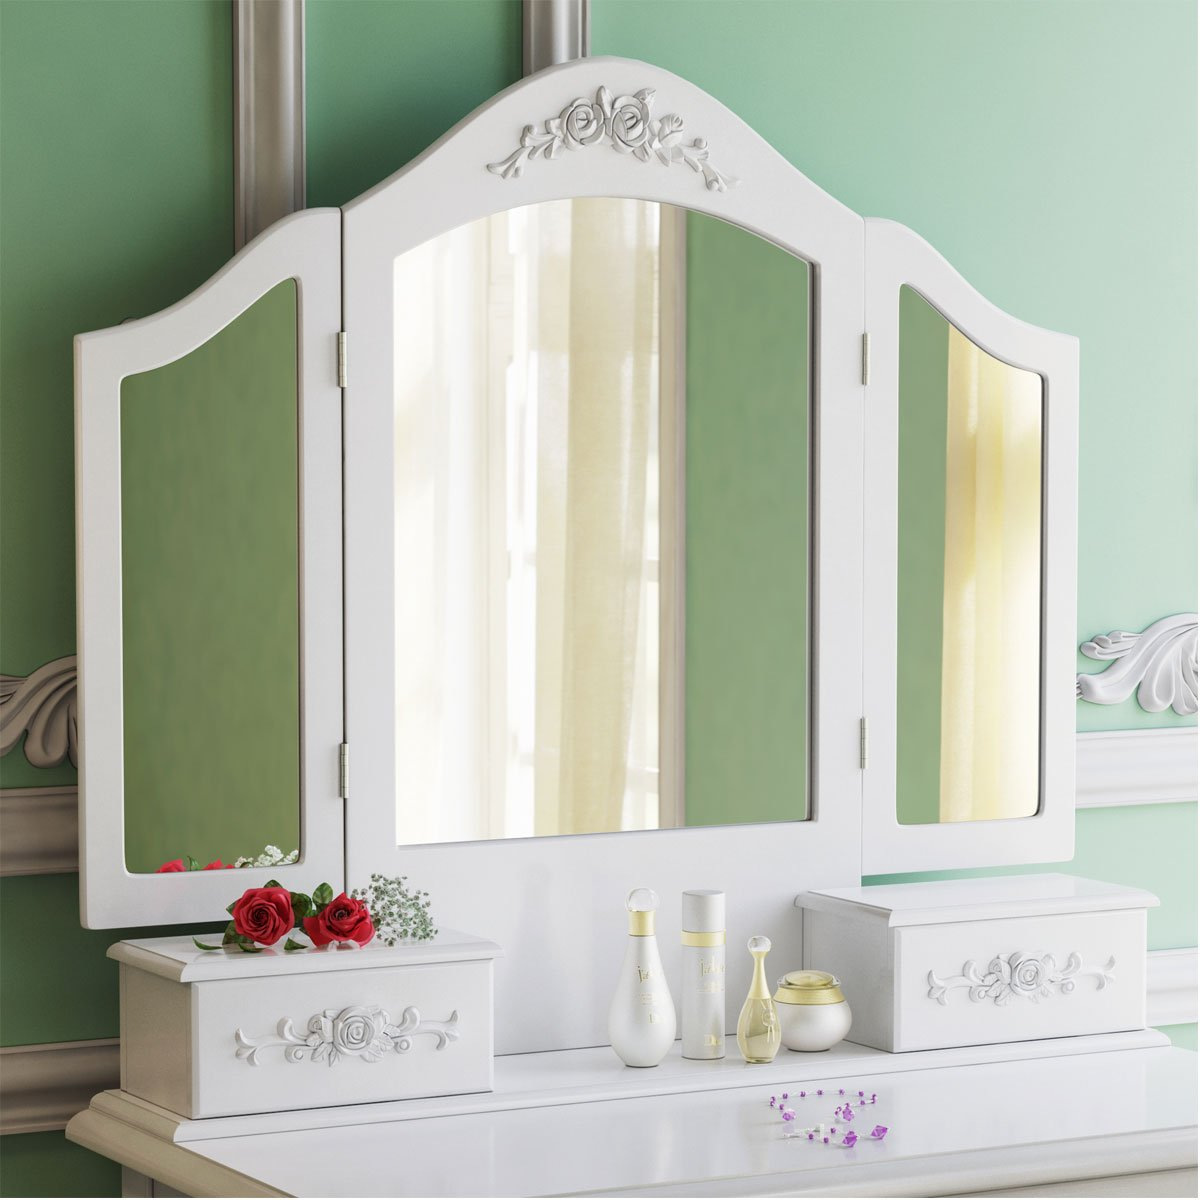 Tribesigns Wood Makeup Vanity Table Set with 3 Mirror and Stool Bedroom Dressing Table Dresser Desk, White 2